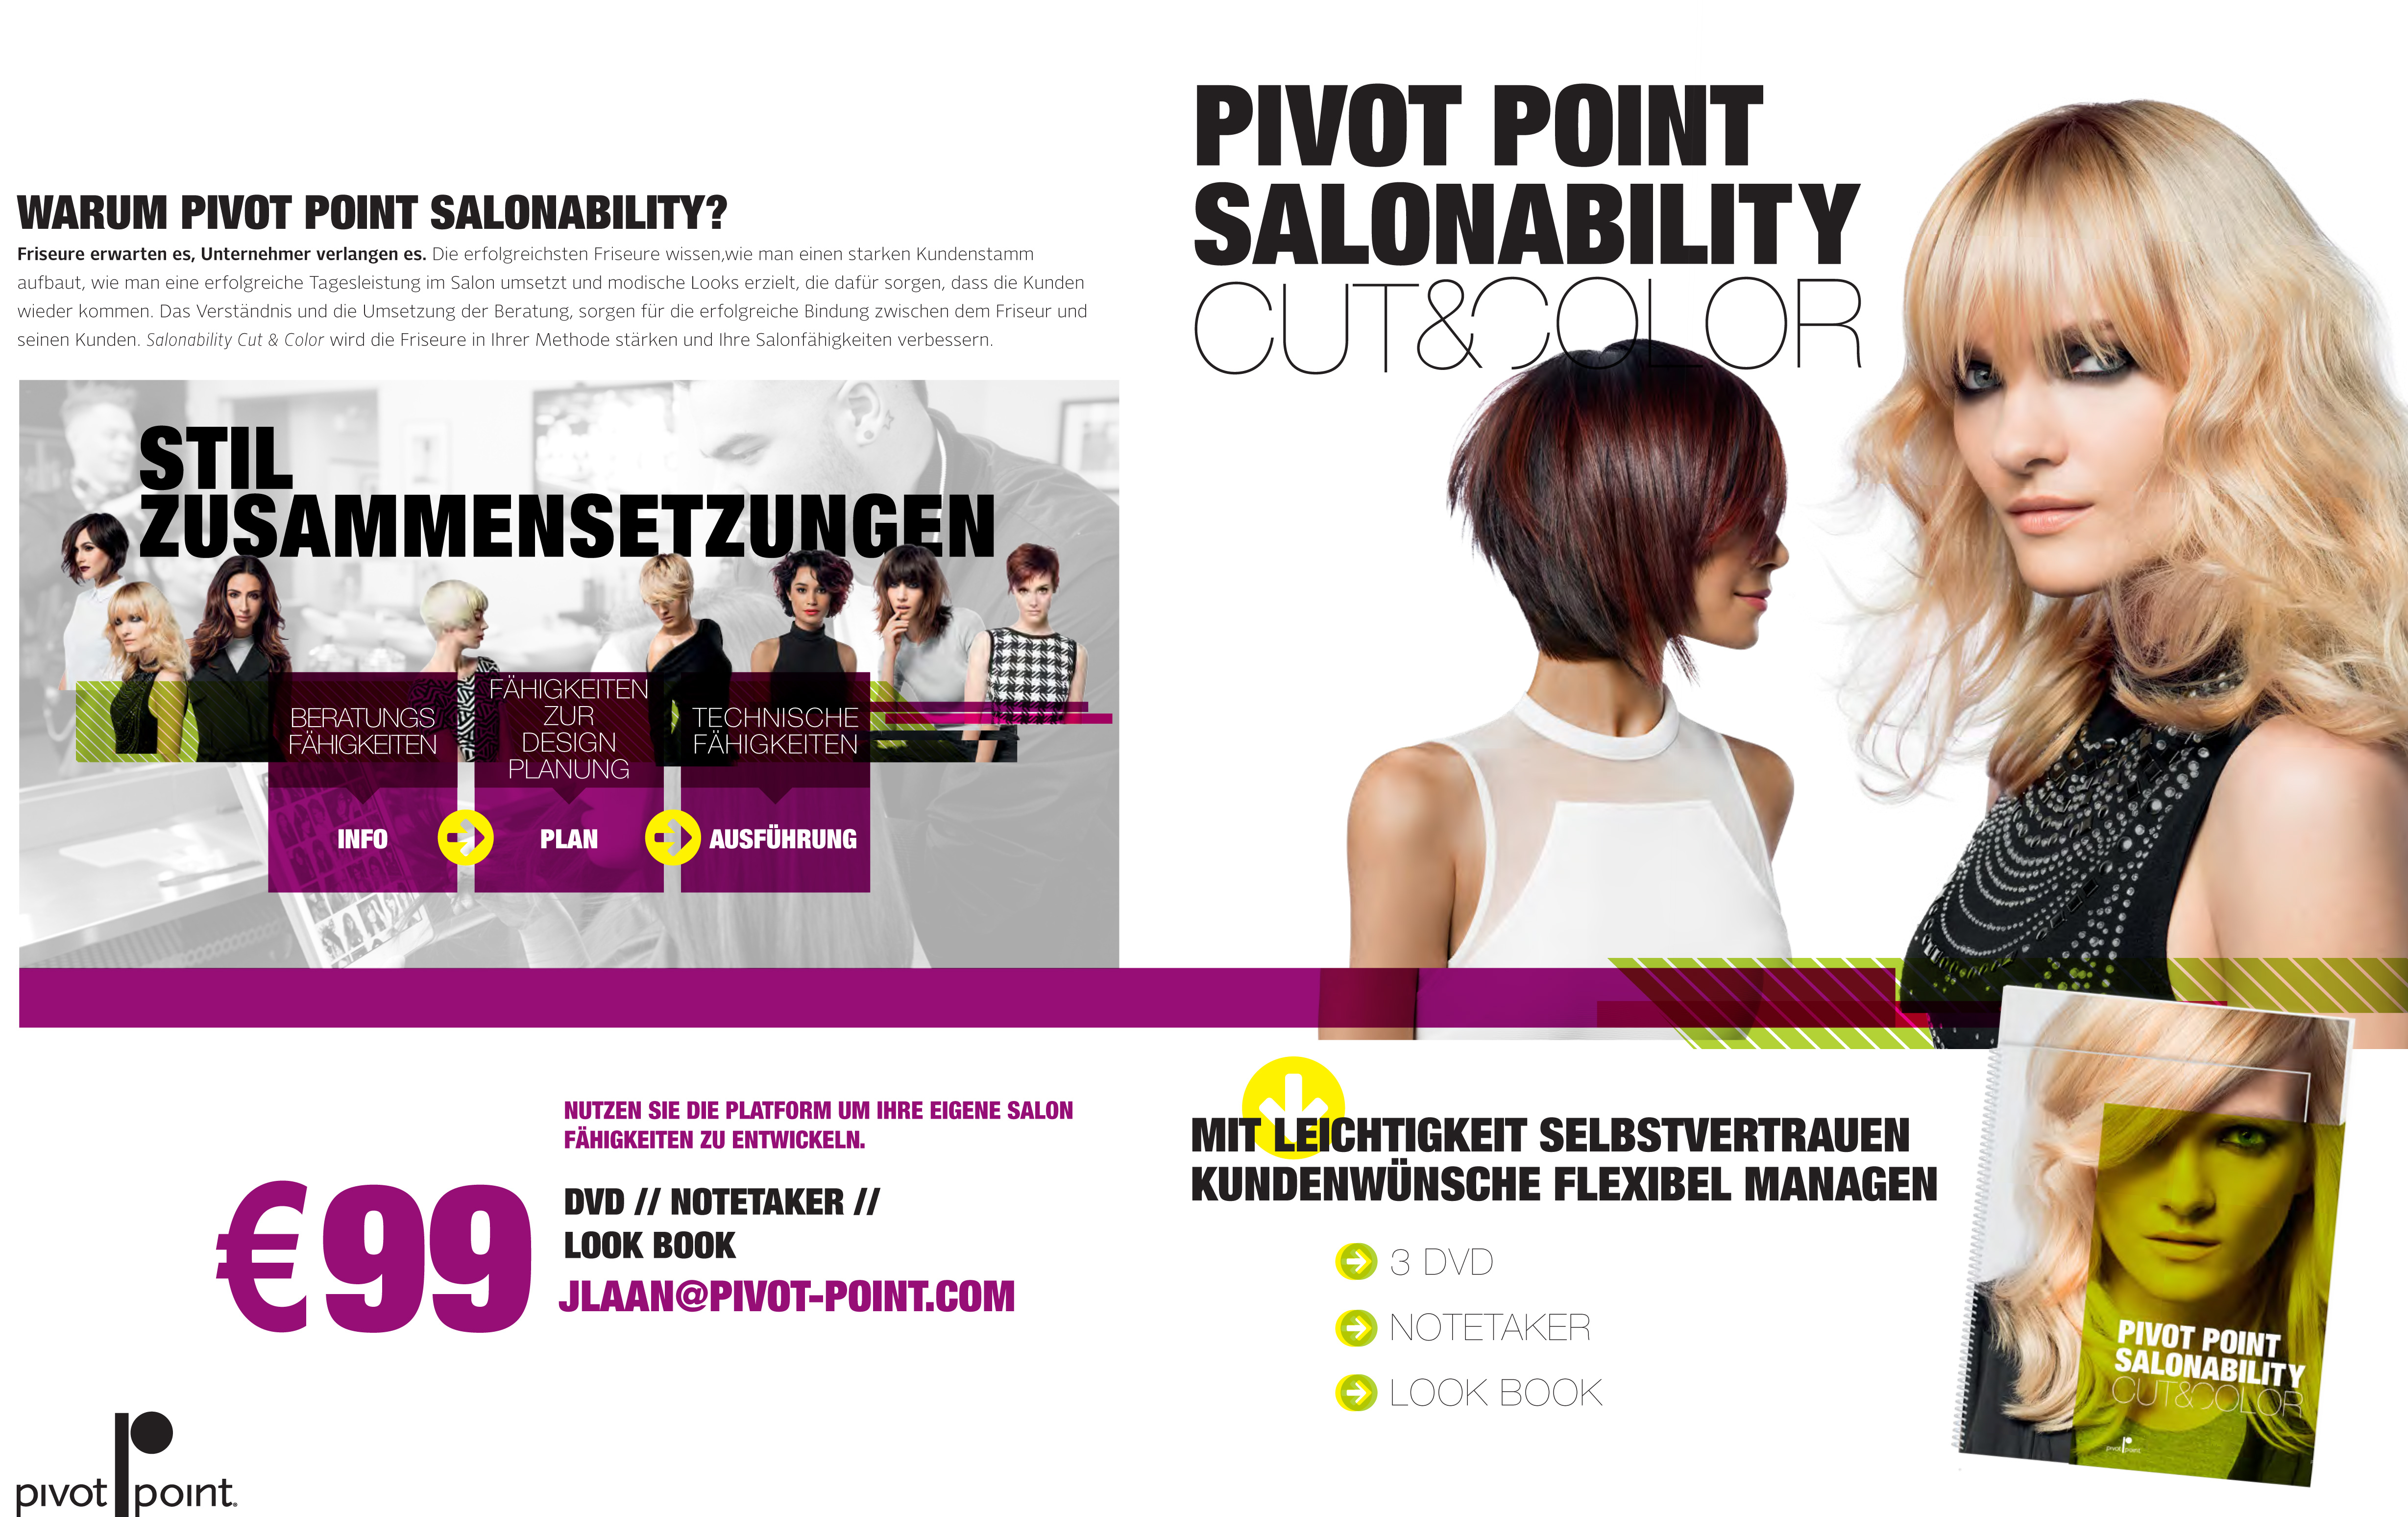 Salonability-Cut-&-Color_DE-1